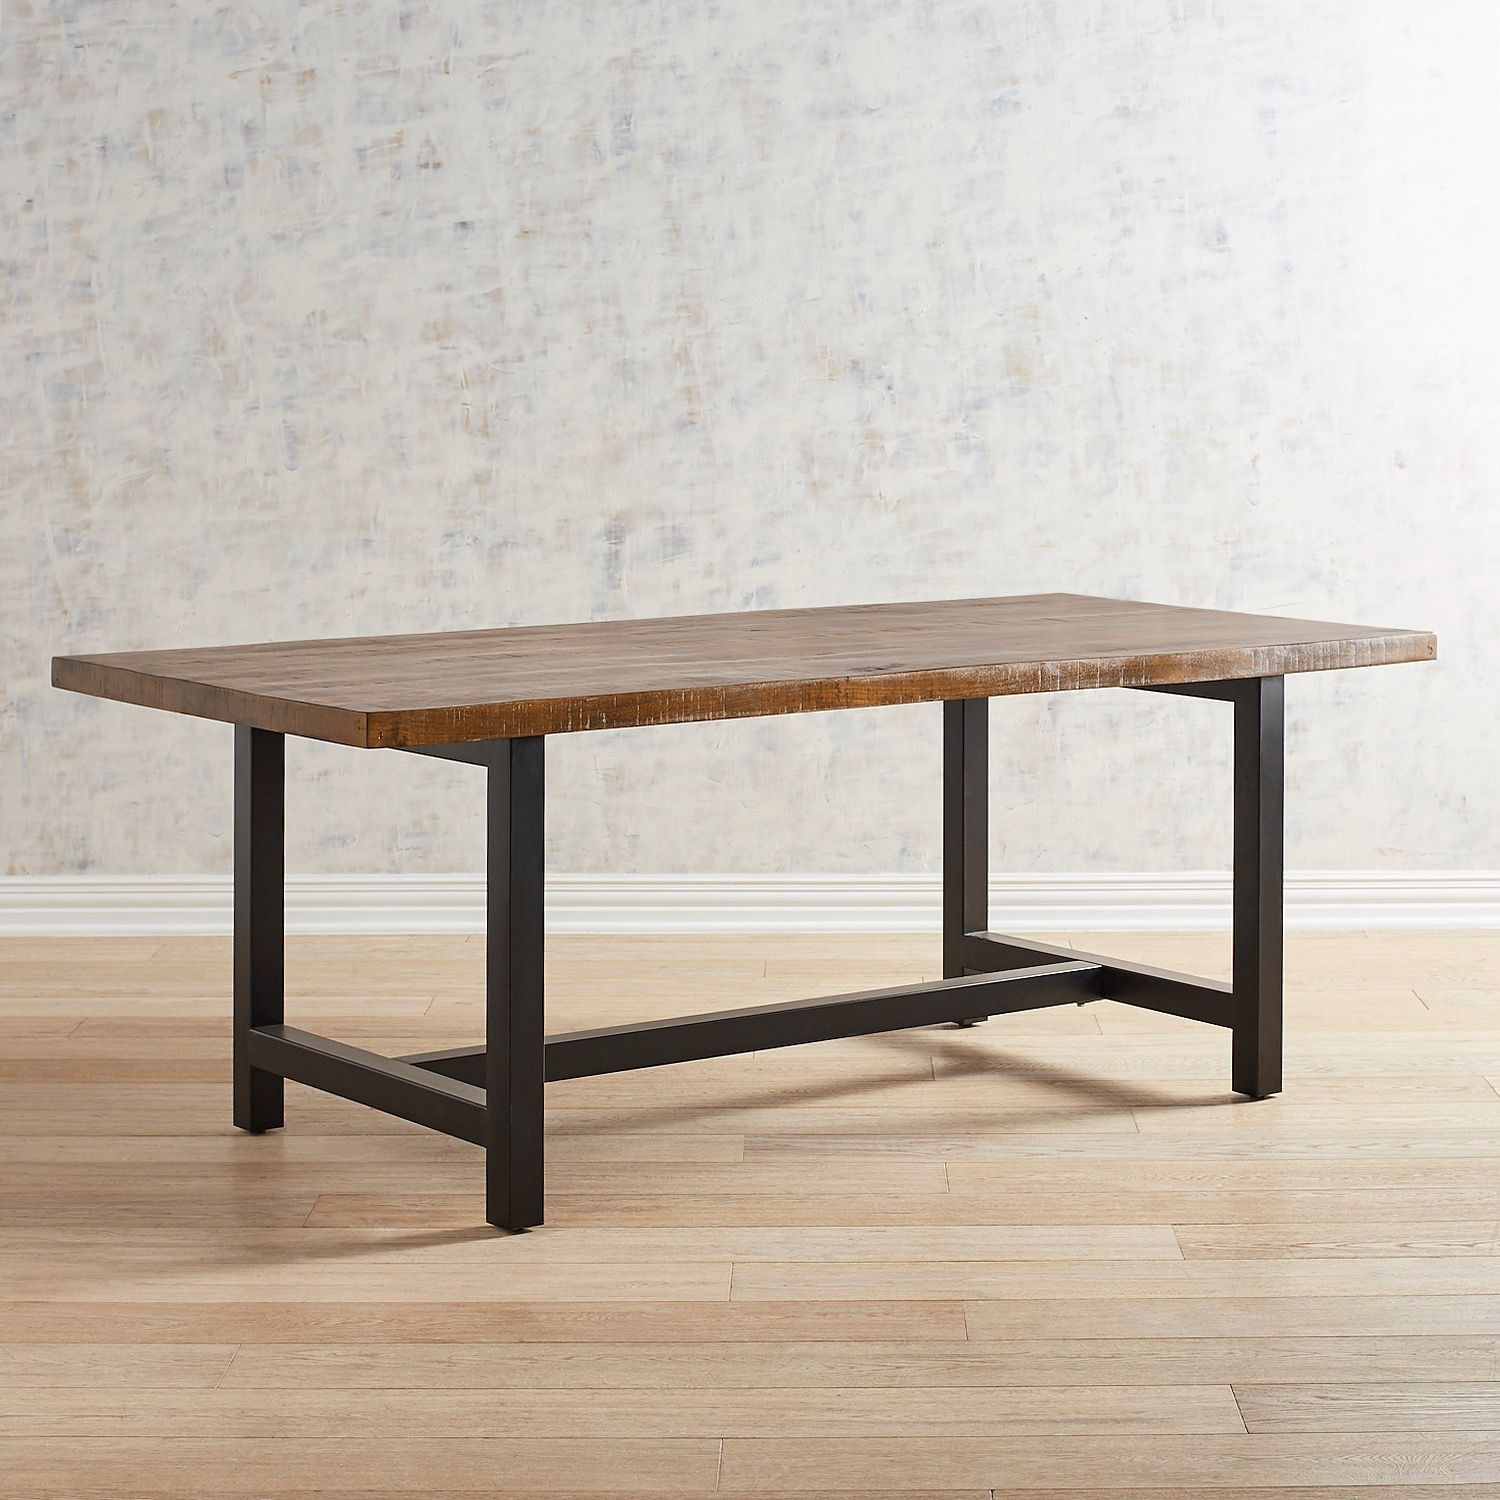 Harlan Brown Dining Table | Products | Pinterest | Dining, Dining For Best And Newest Magnolia Home Bench Keeping 96 Inch Dining Tables (Image 3 of 20)